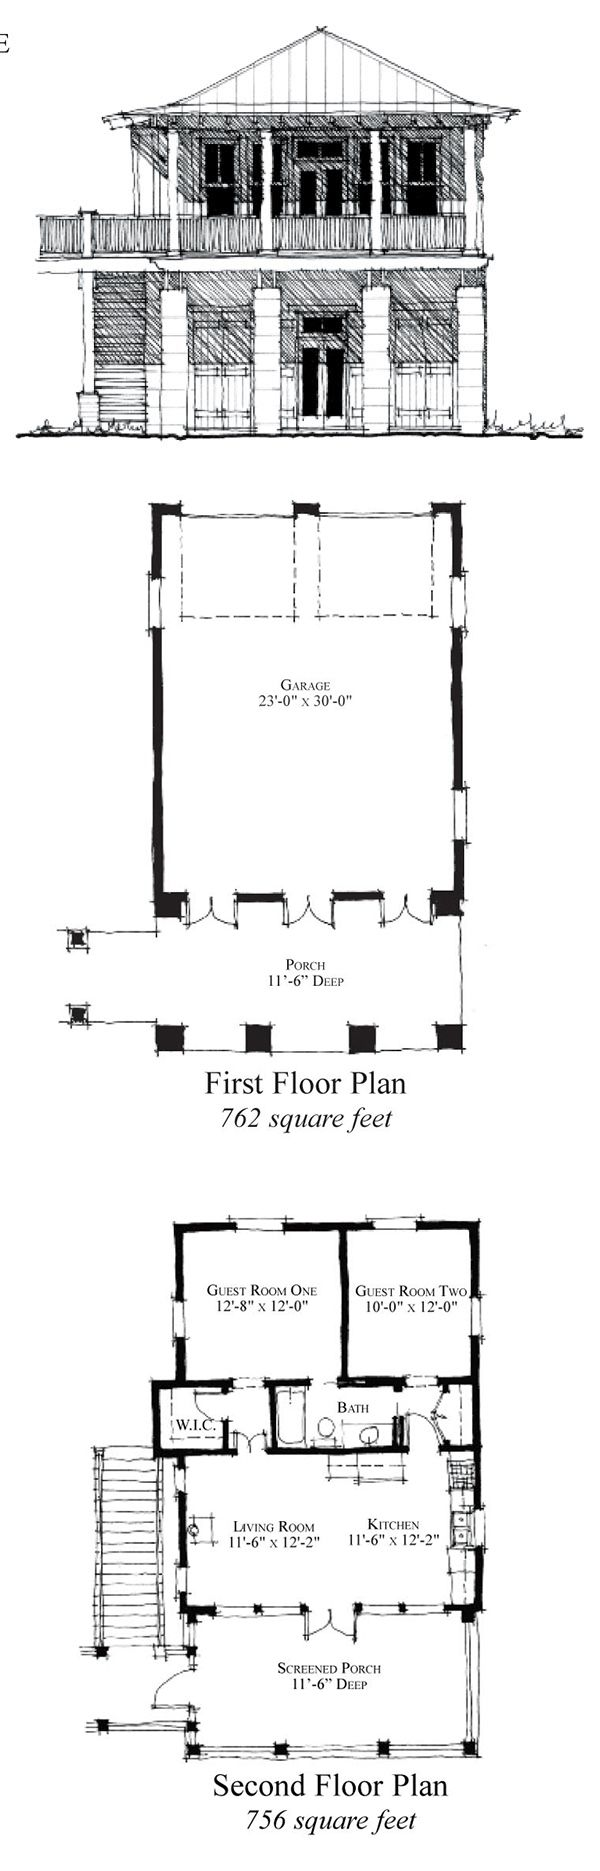 100 coolhouseplans cool house plans and simply elegant home 16 best carolina house plans images on pinterest cool house find this pin and more on